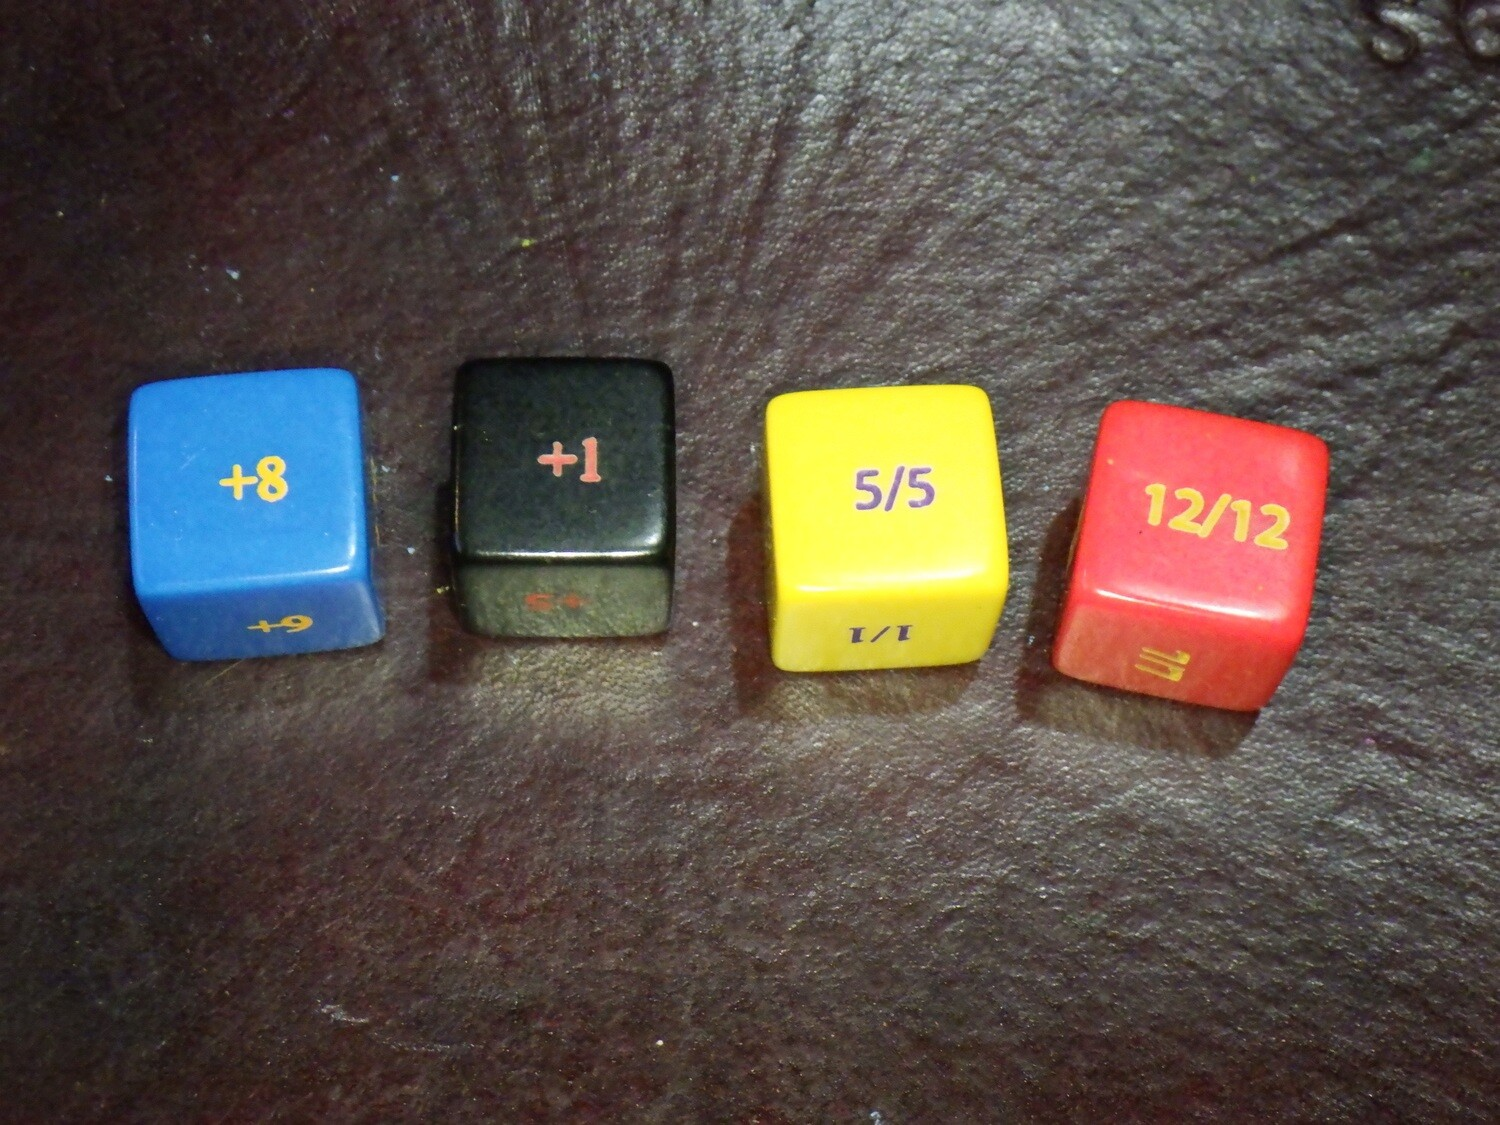 Counter Summoned Creatures +1-+12 and 1/1-12/12 Dice D6 Die Custom 16mm Gaming Tabletop RPG CCG Card Games Collectable Trading Board